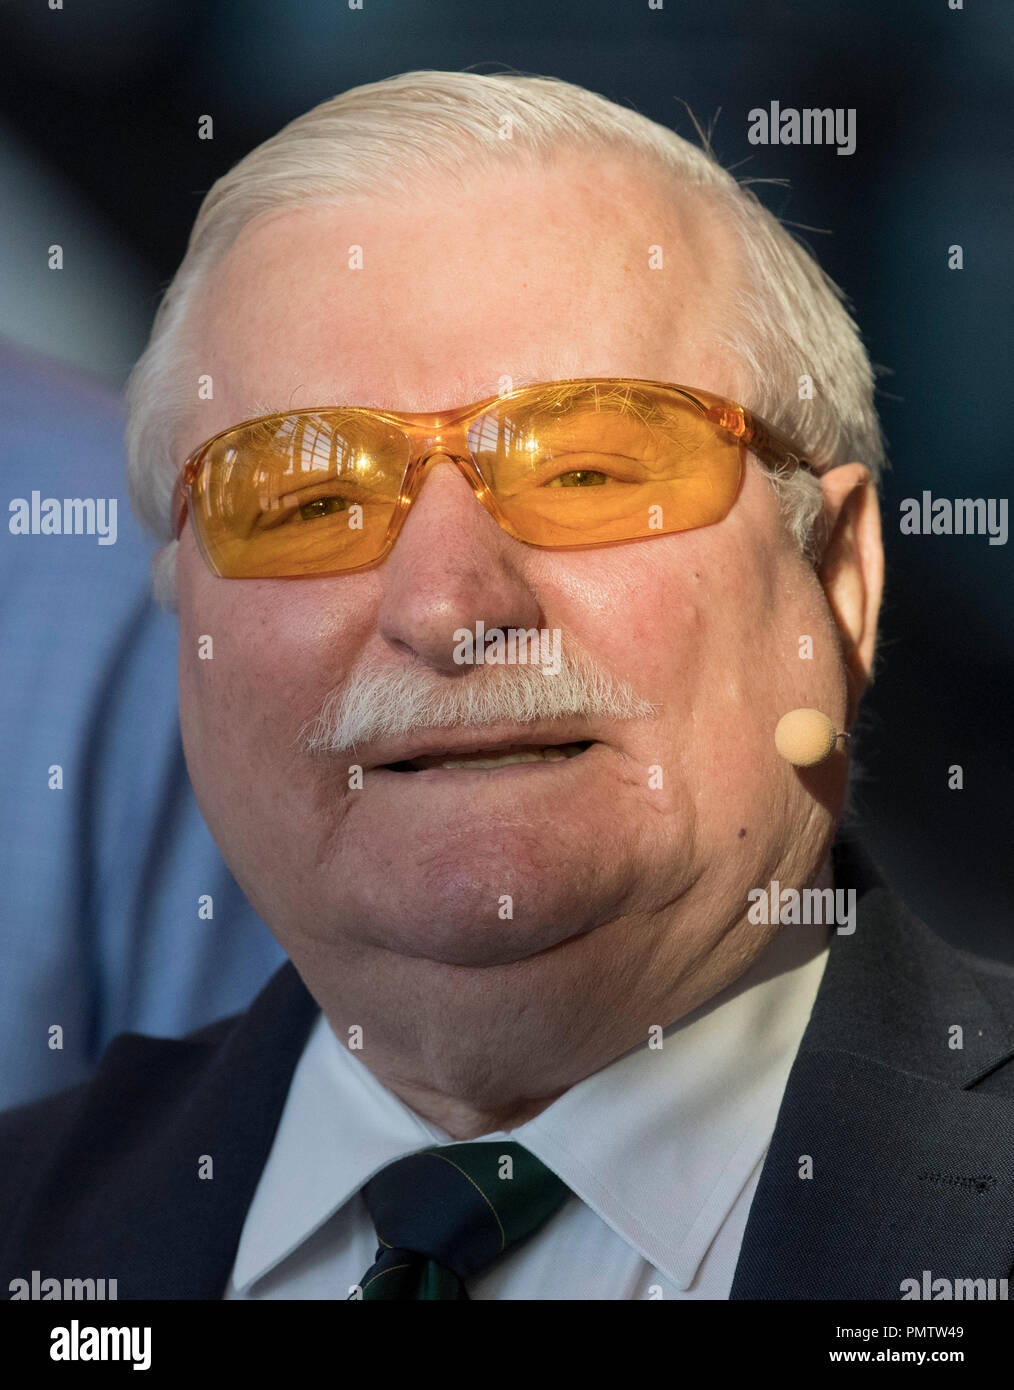 Darmstadt, Hessen. 19th Sep, 2018. Nobel Peace Prize winner Lech Walesa arrives at a symposium on the topic 'Nonviolence is the way'. Credit: Boris Roessler/dpa/Alamy Live News - Stock Image